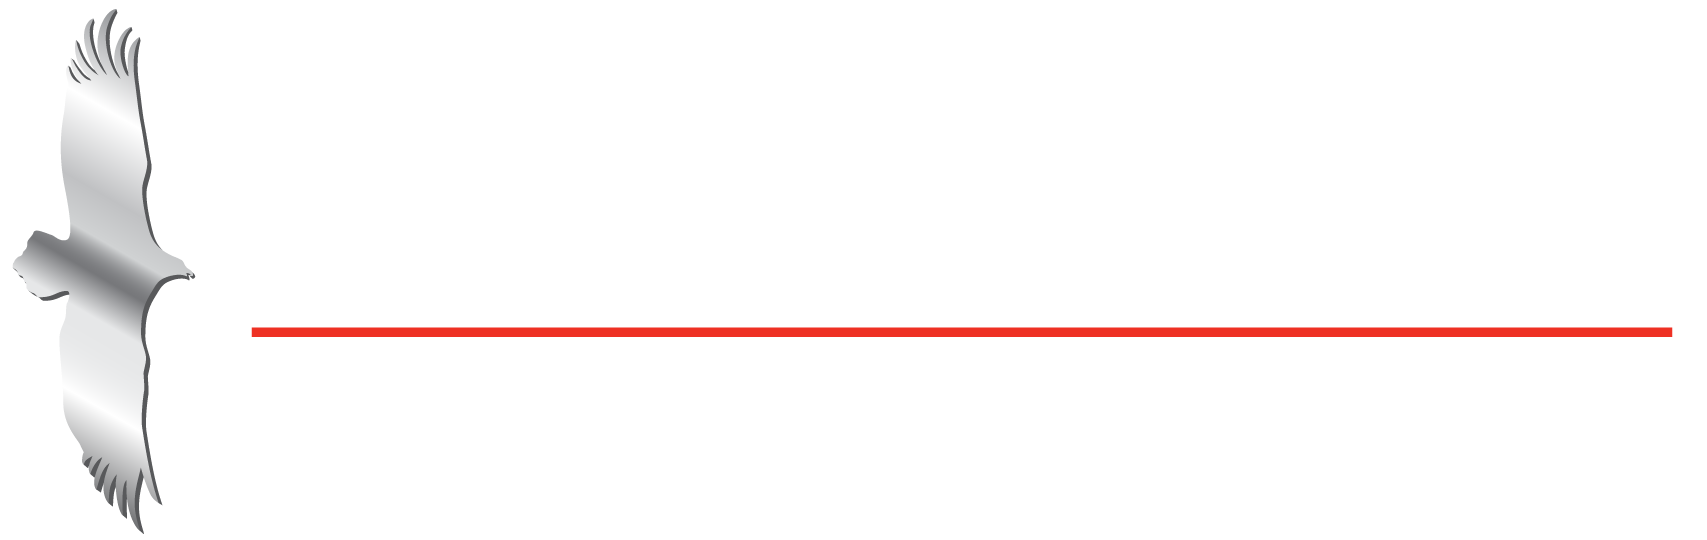 Hunter Hawk - Custom Industrial Manufacturing, Products, Services